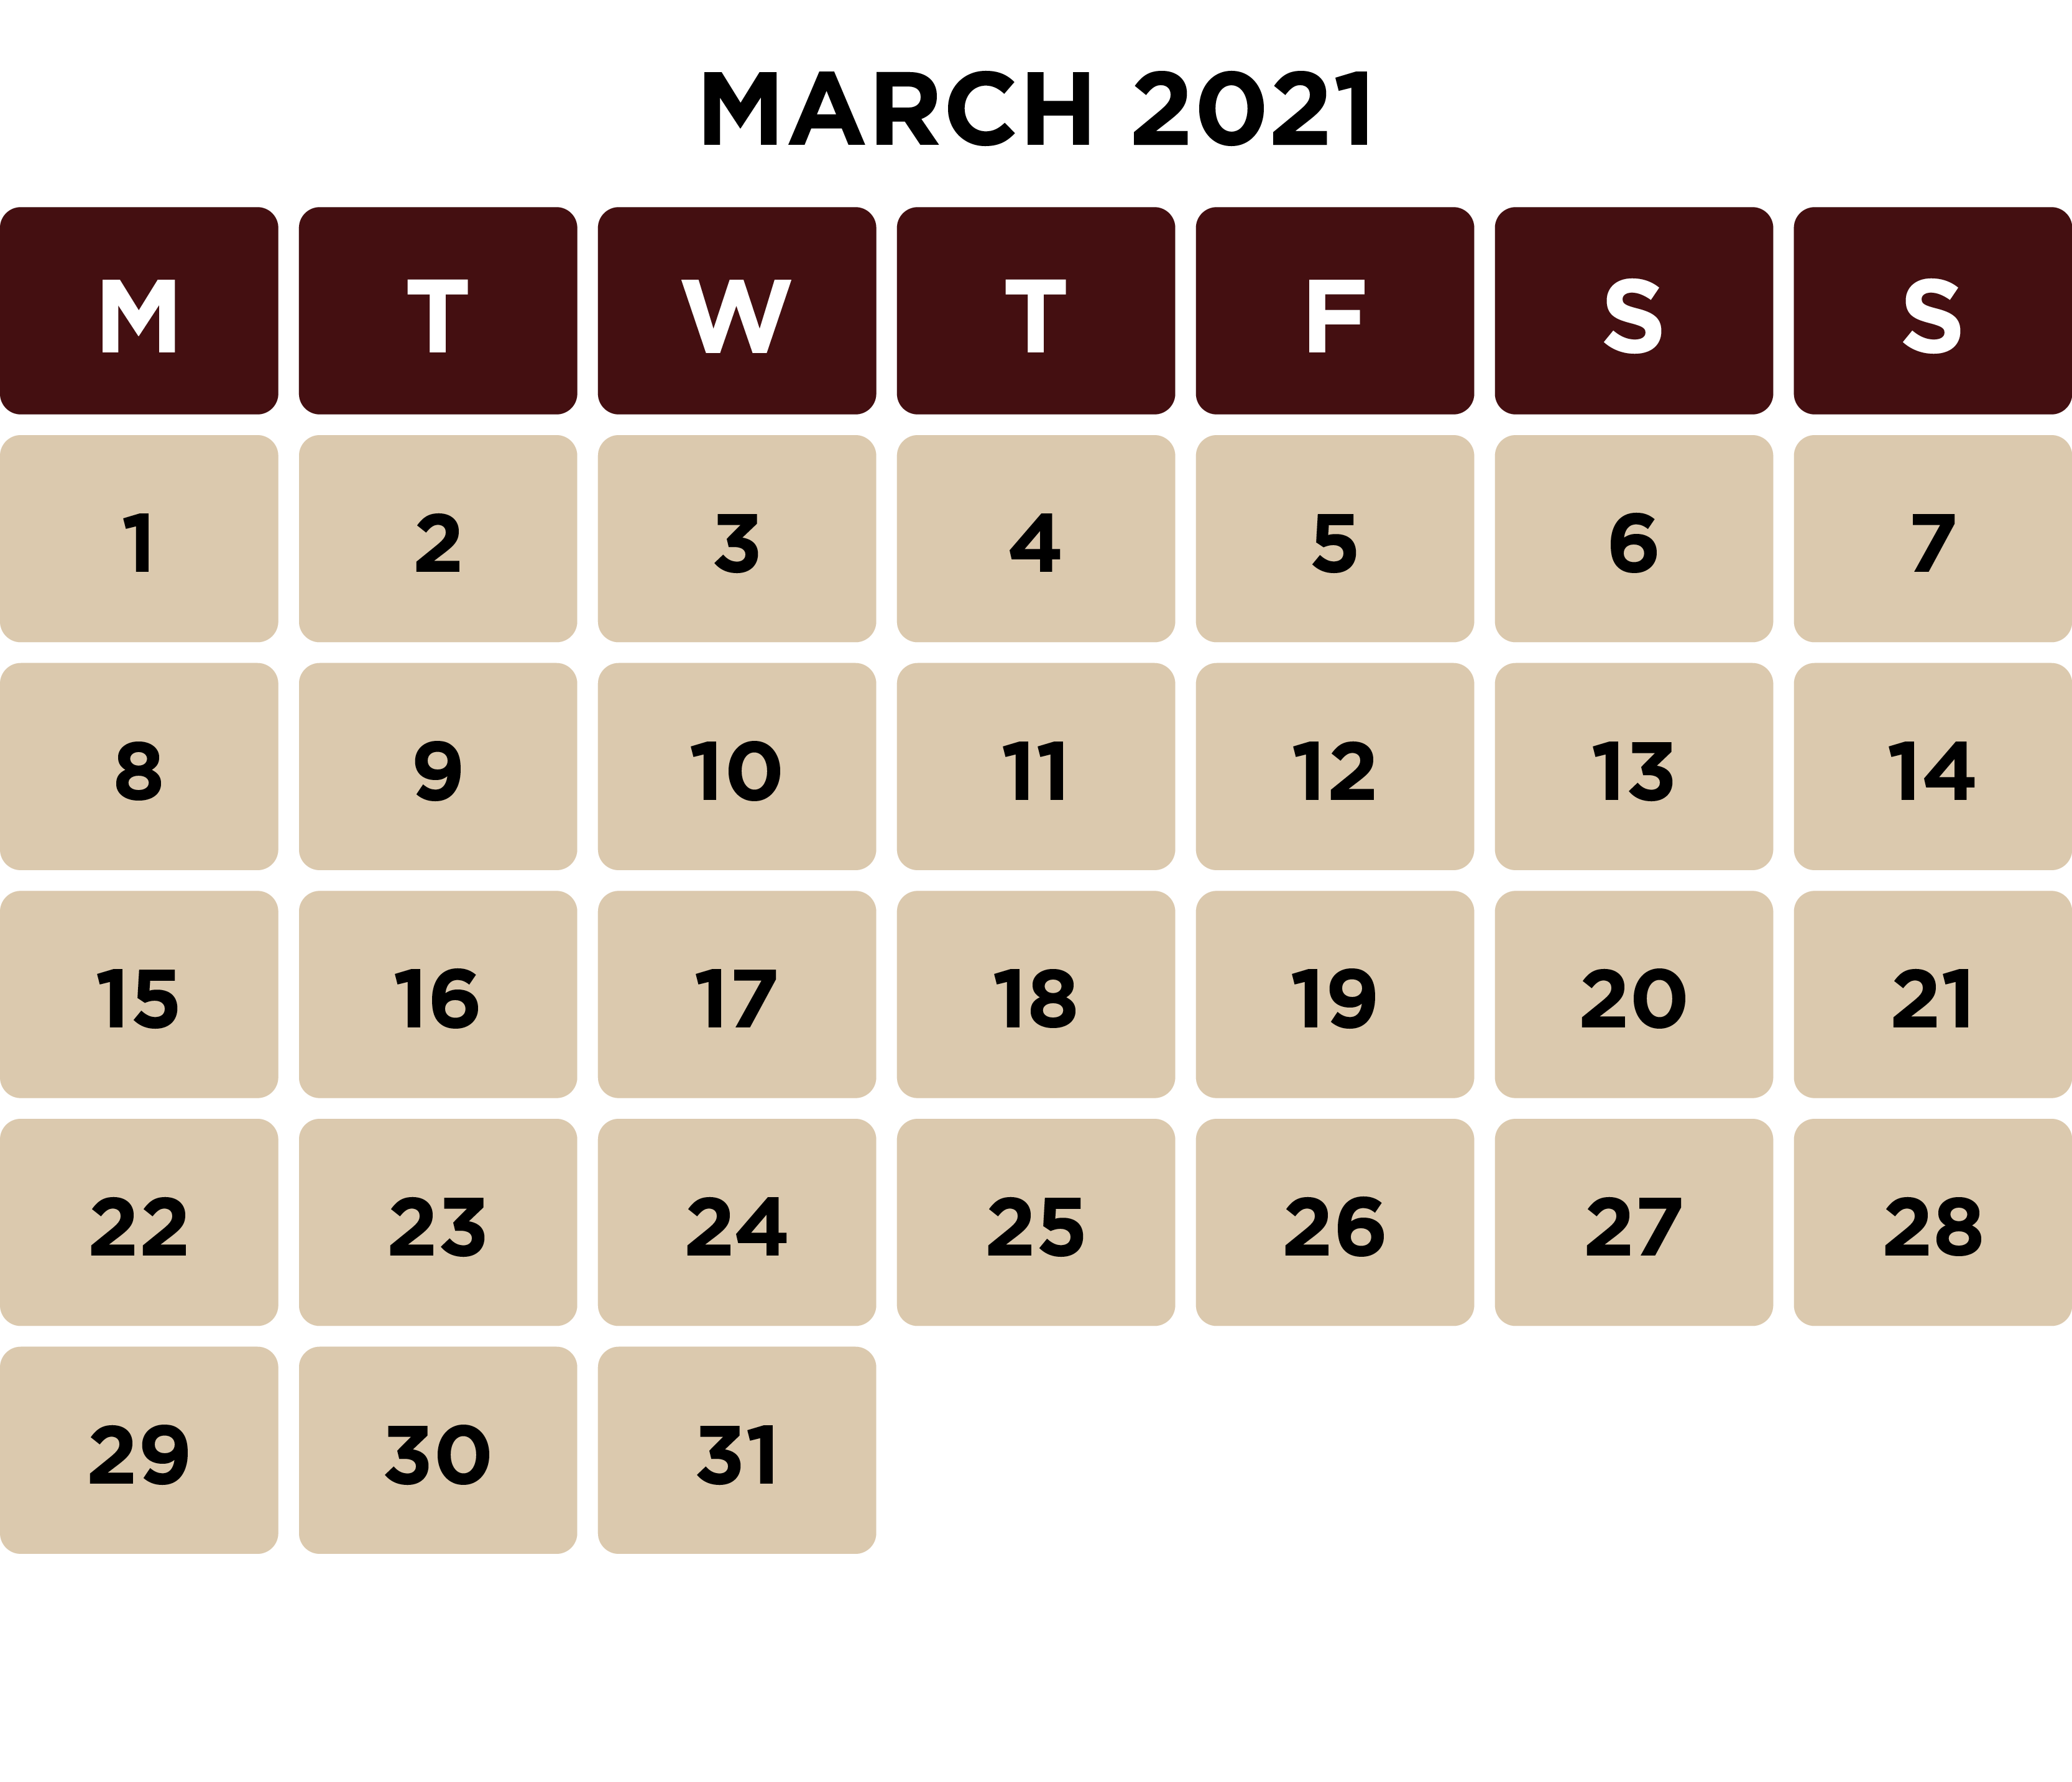 LNER1078 East Coast Upgrade 2020-21 Dates - Web Graphic Month Supply 800x688px - 05 March 2021.png